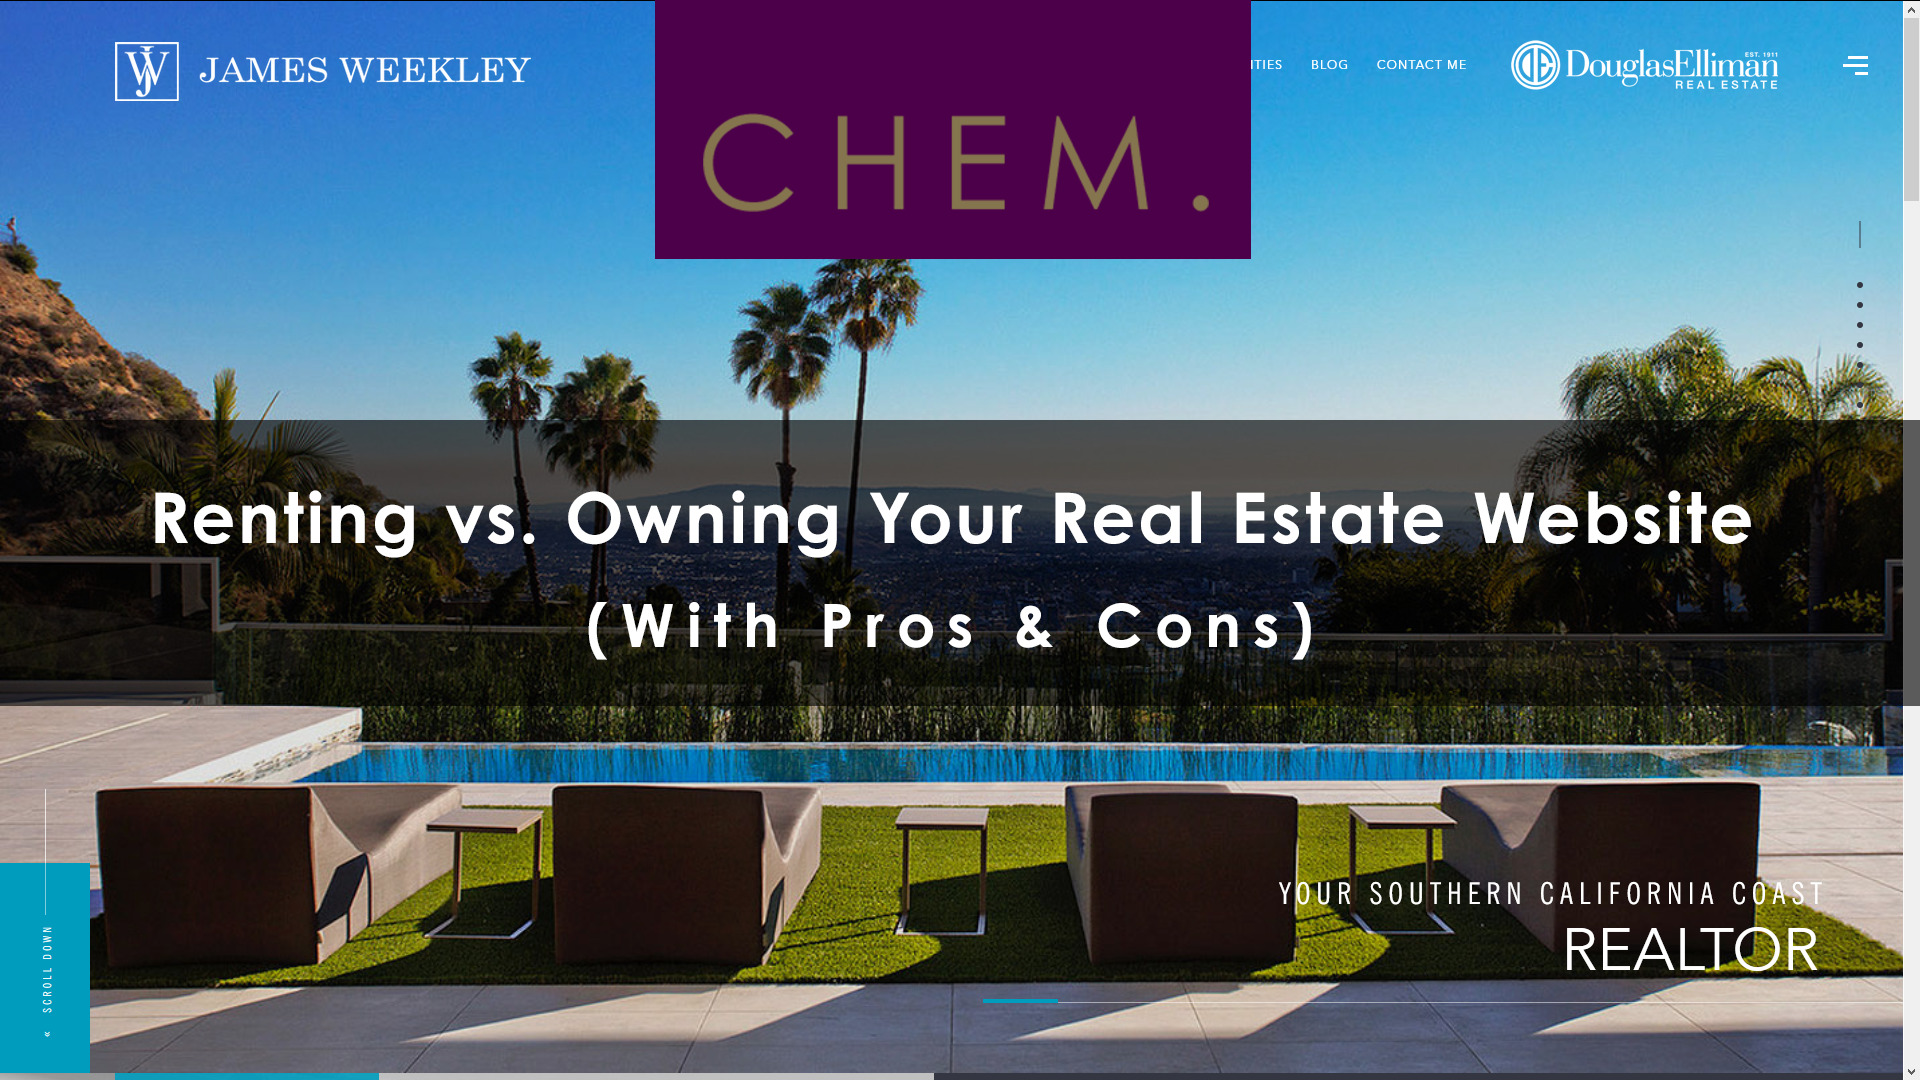 Renting vs. Owning Your Real Estate Website (With Pros & Cons)